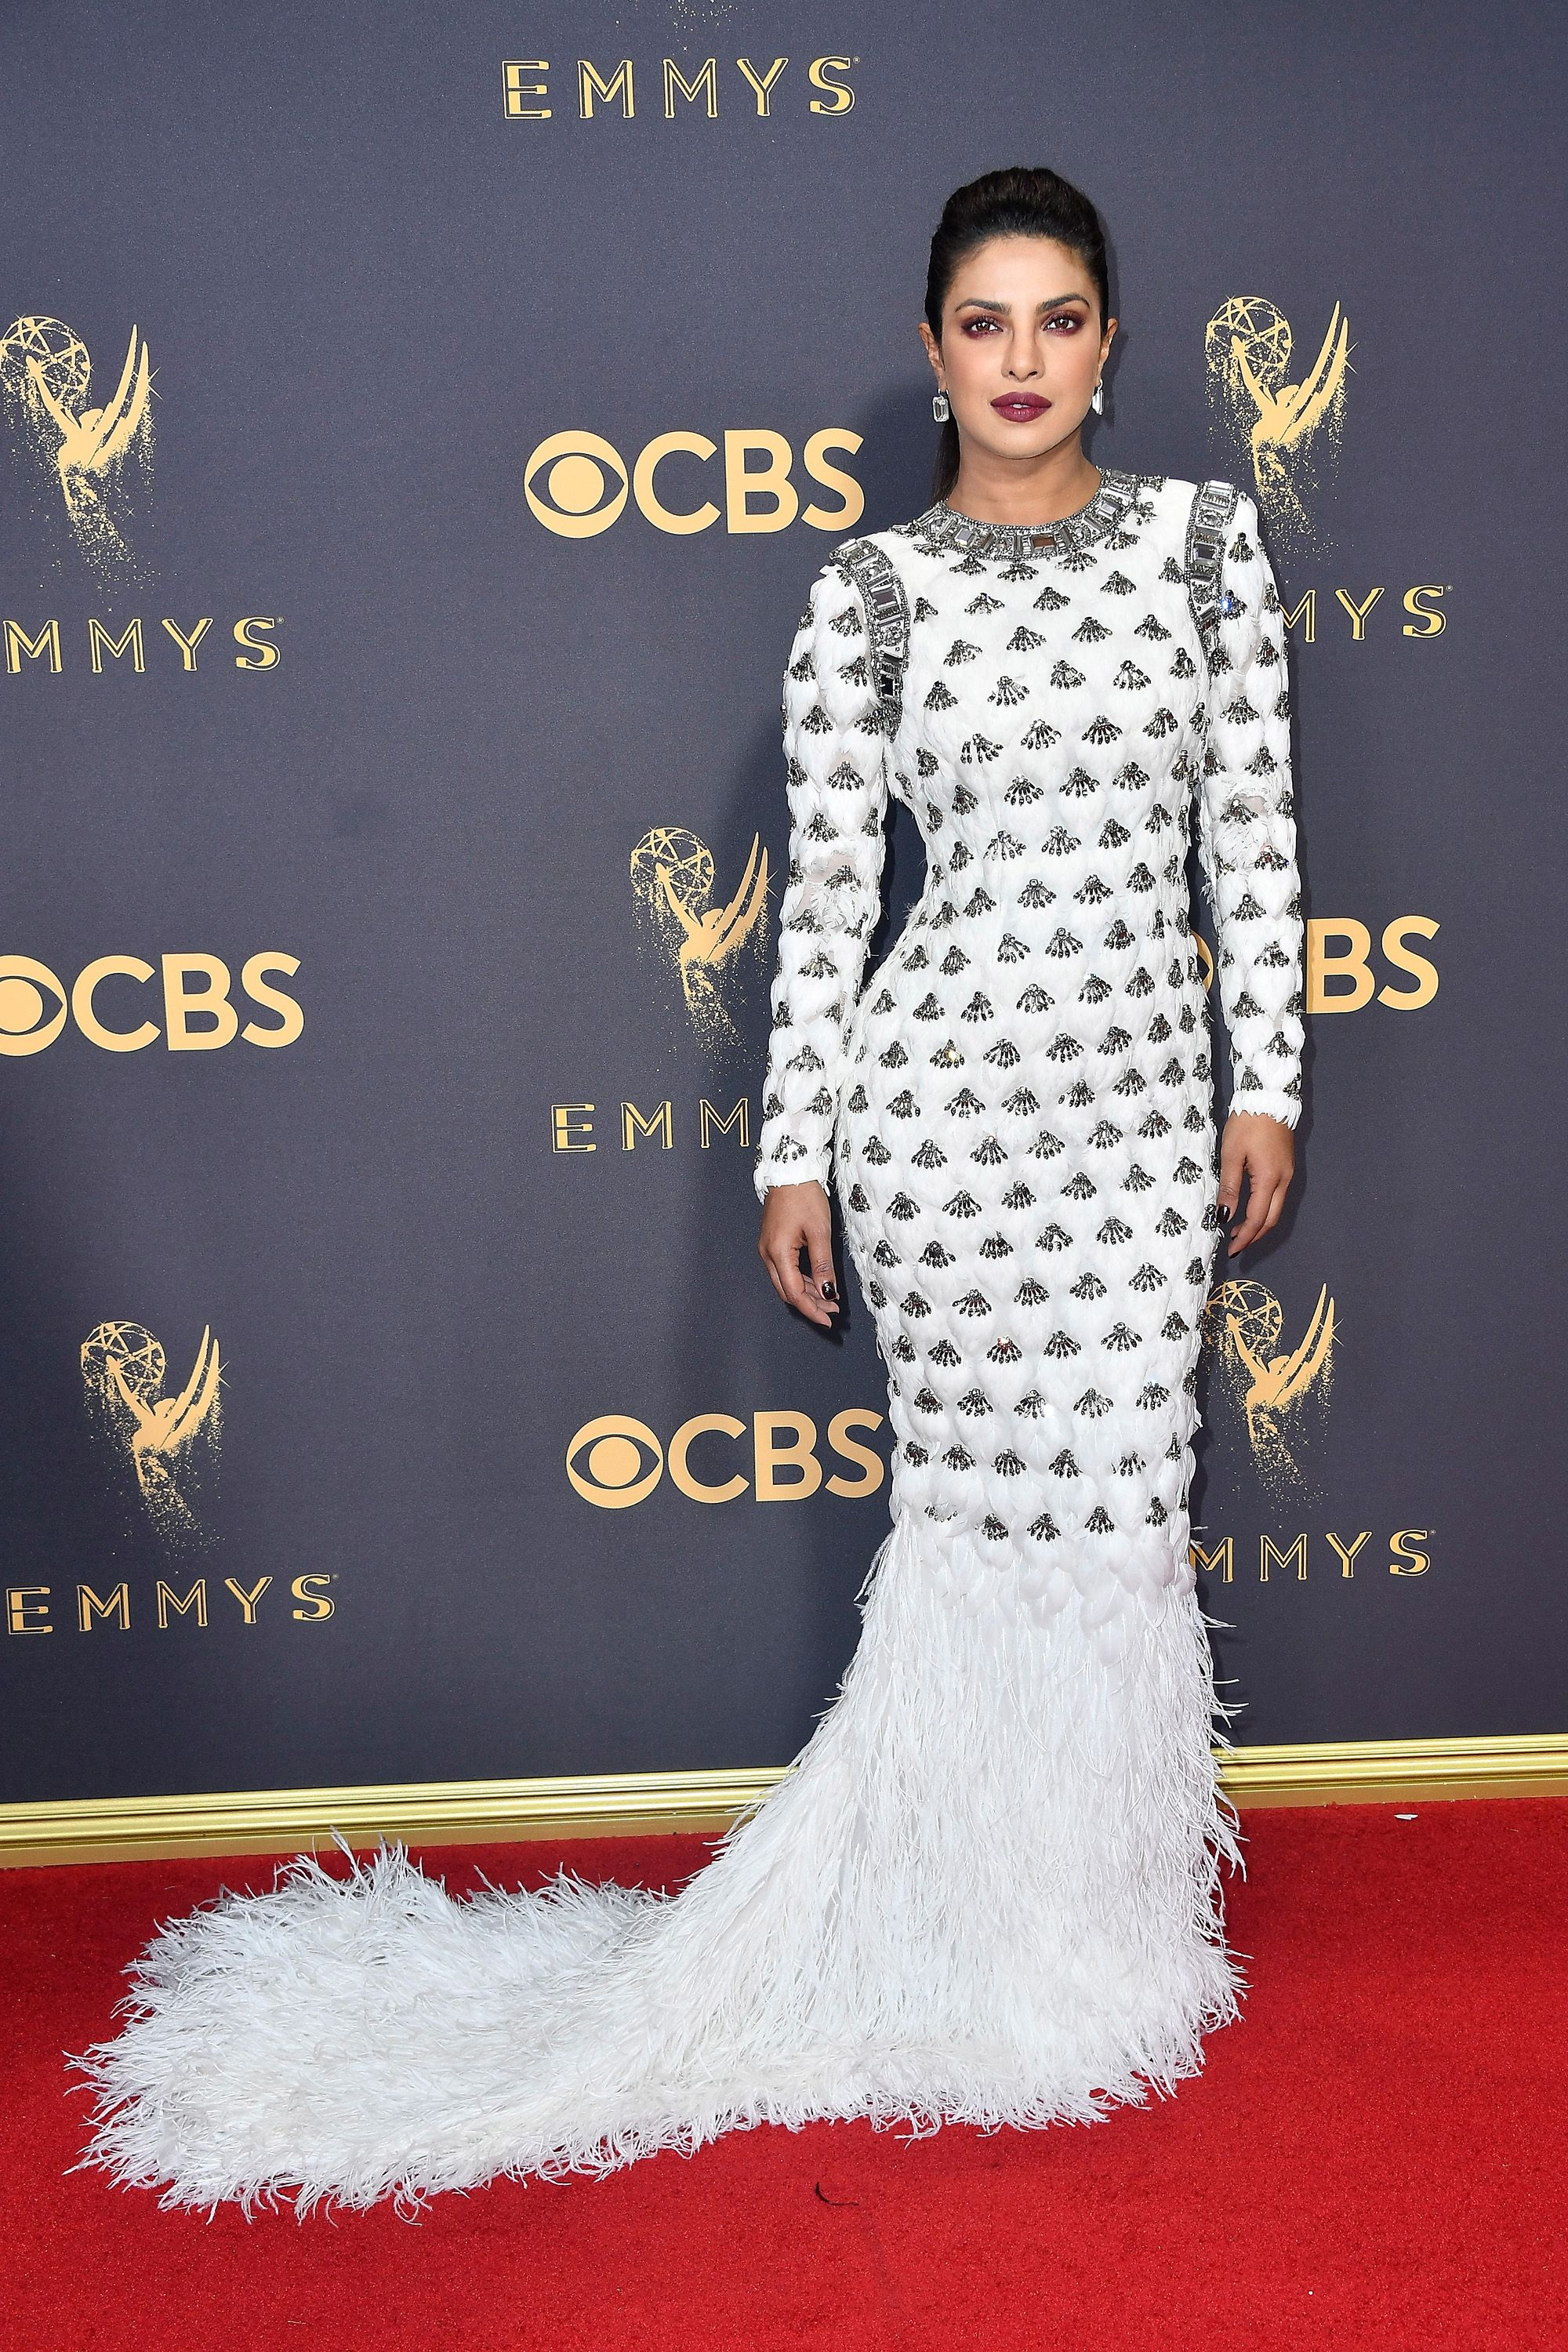 Best Dressed Red Carpet Emmys 2017 - Ficts